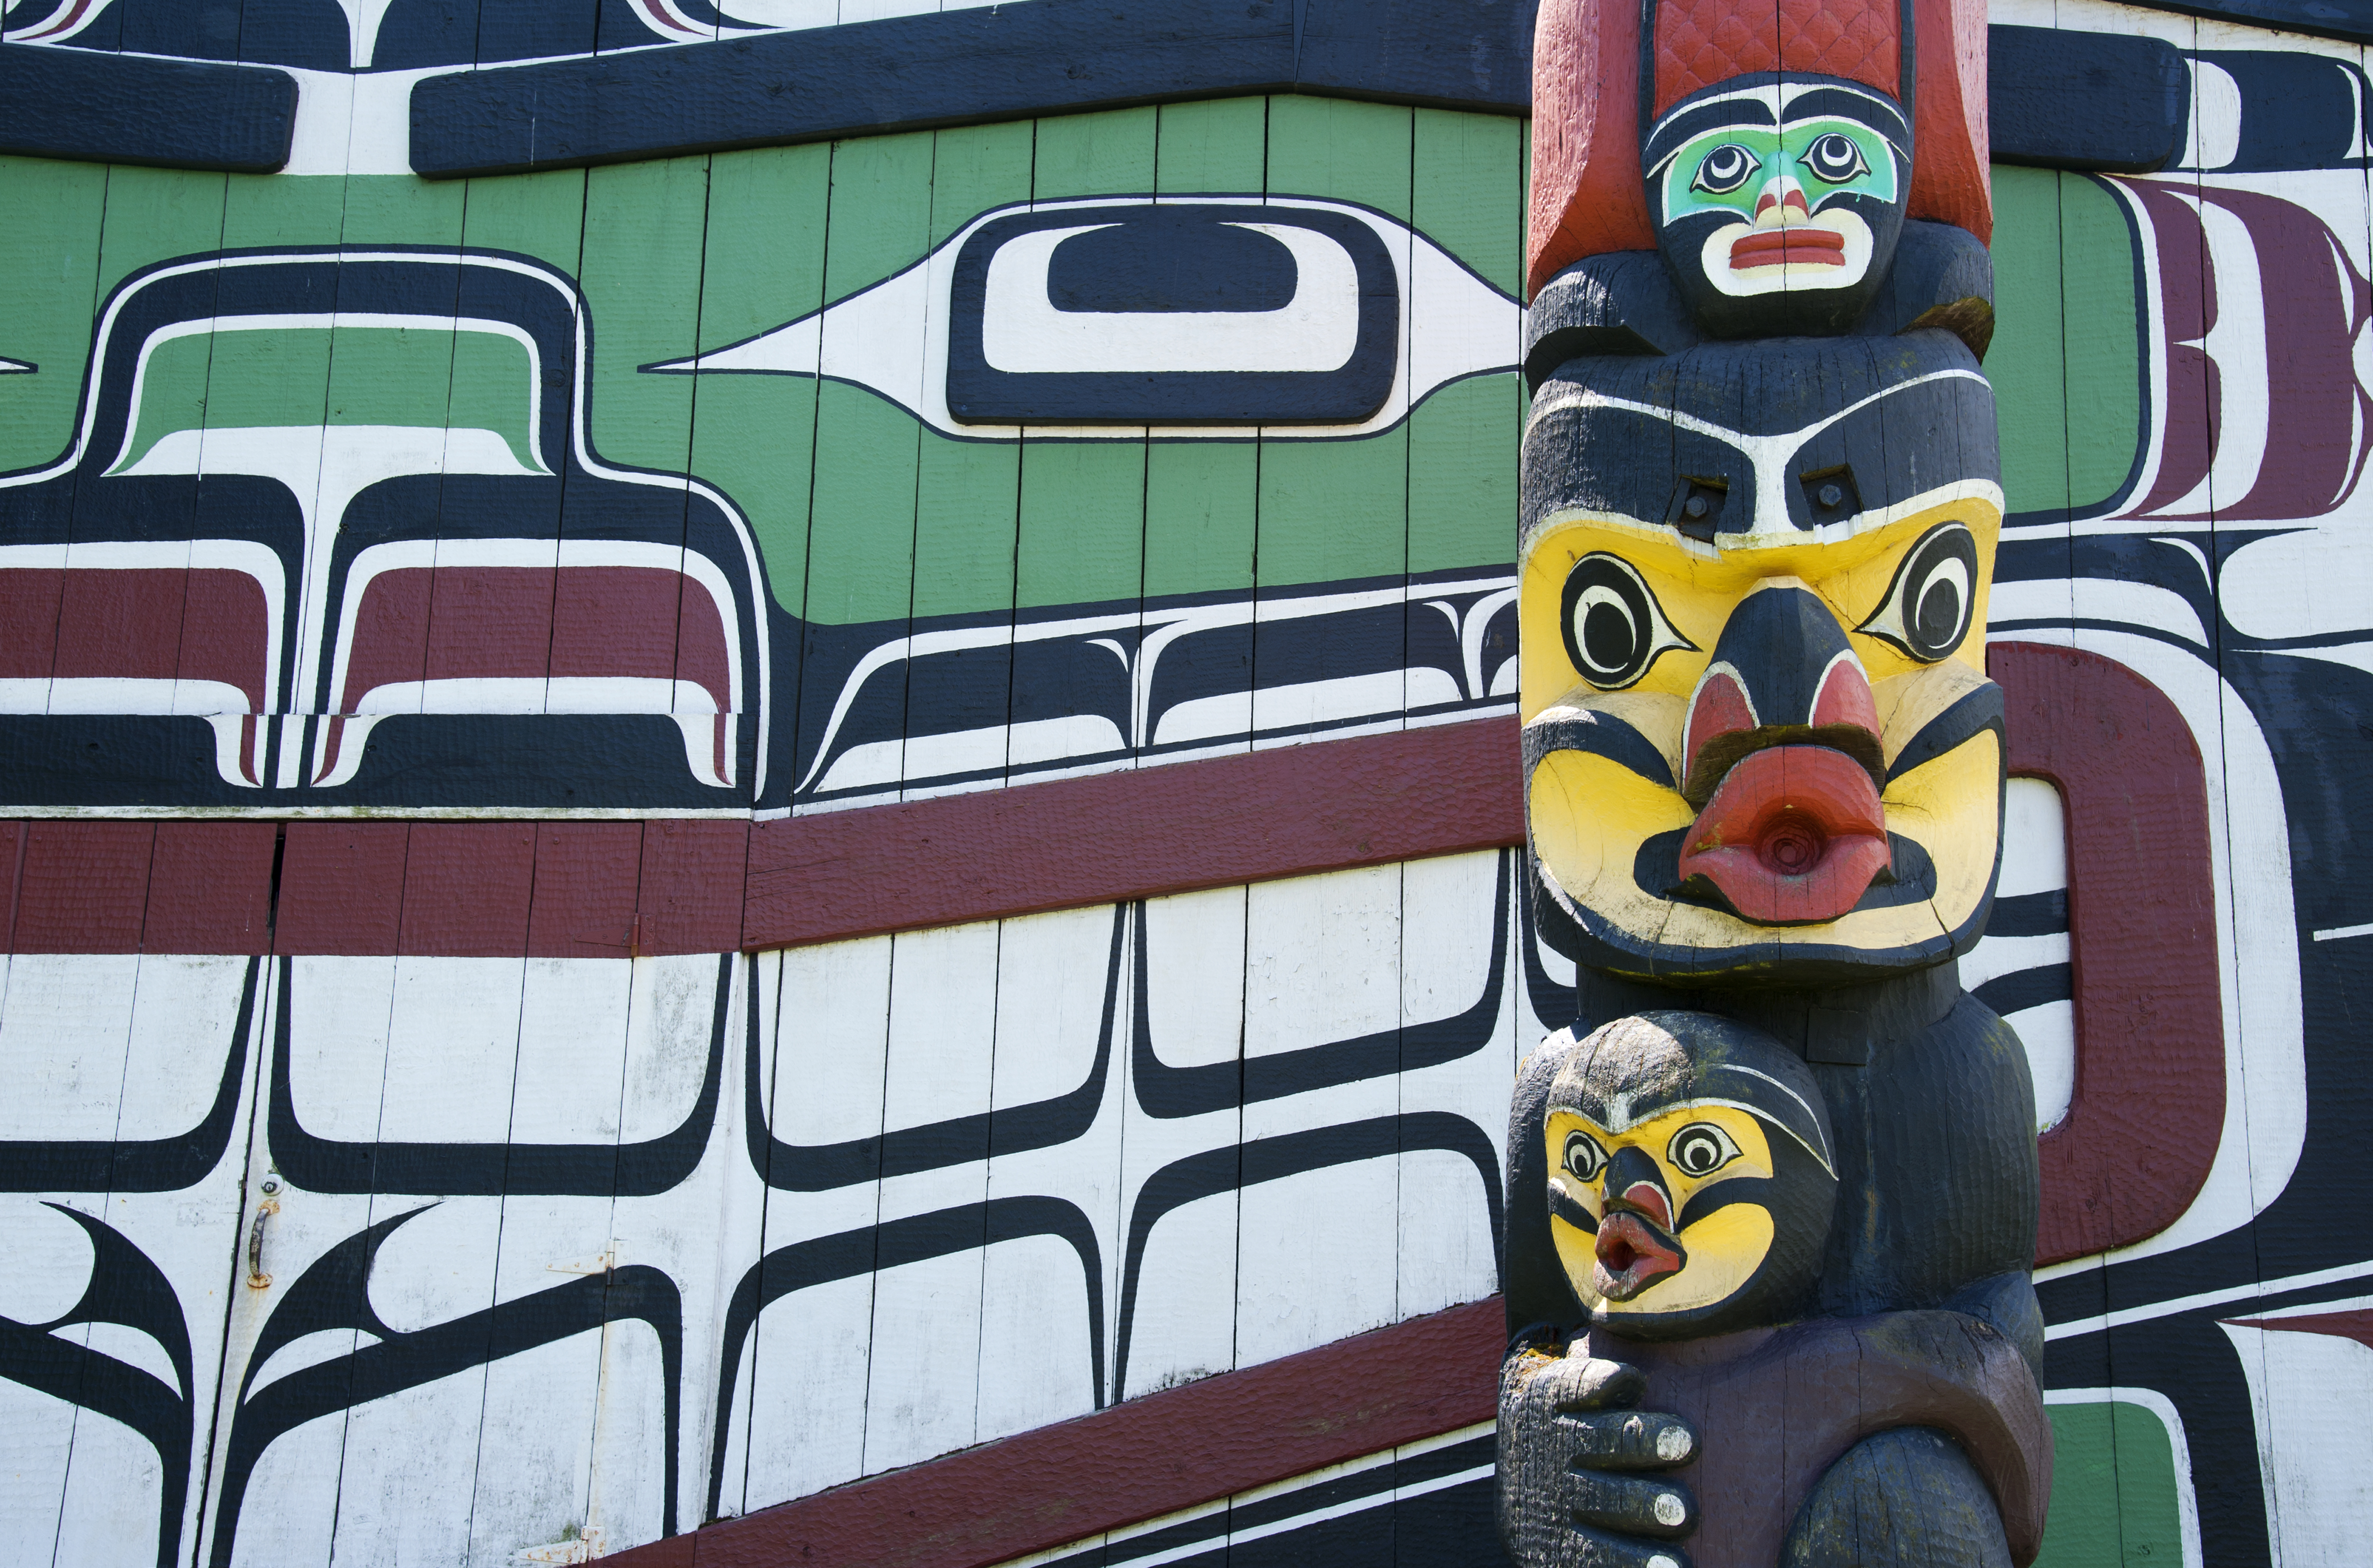 Swoop | First Nations totem in Victoria British Columbia